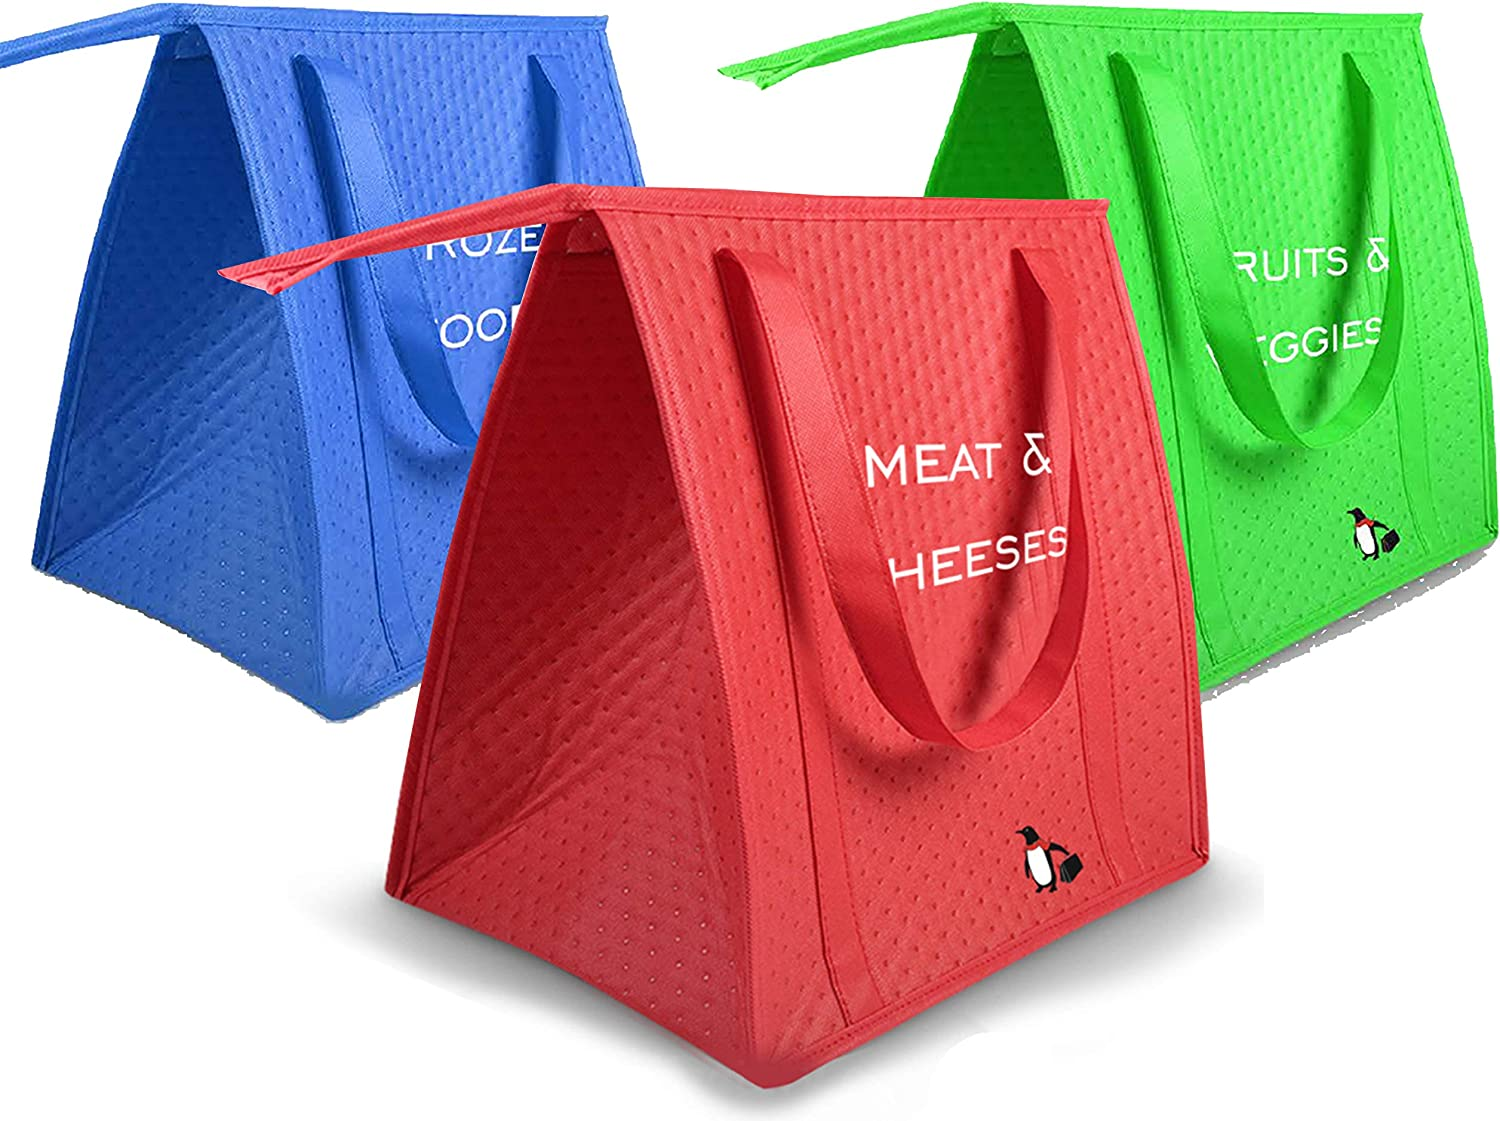 3 Pack Insulated Reusable Grocery Shopping Bags with Zippered Top, Collapsible Thermal Tote